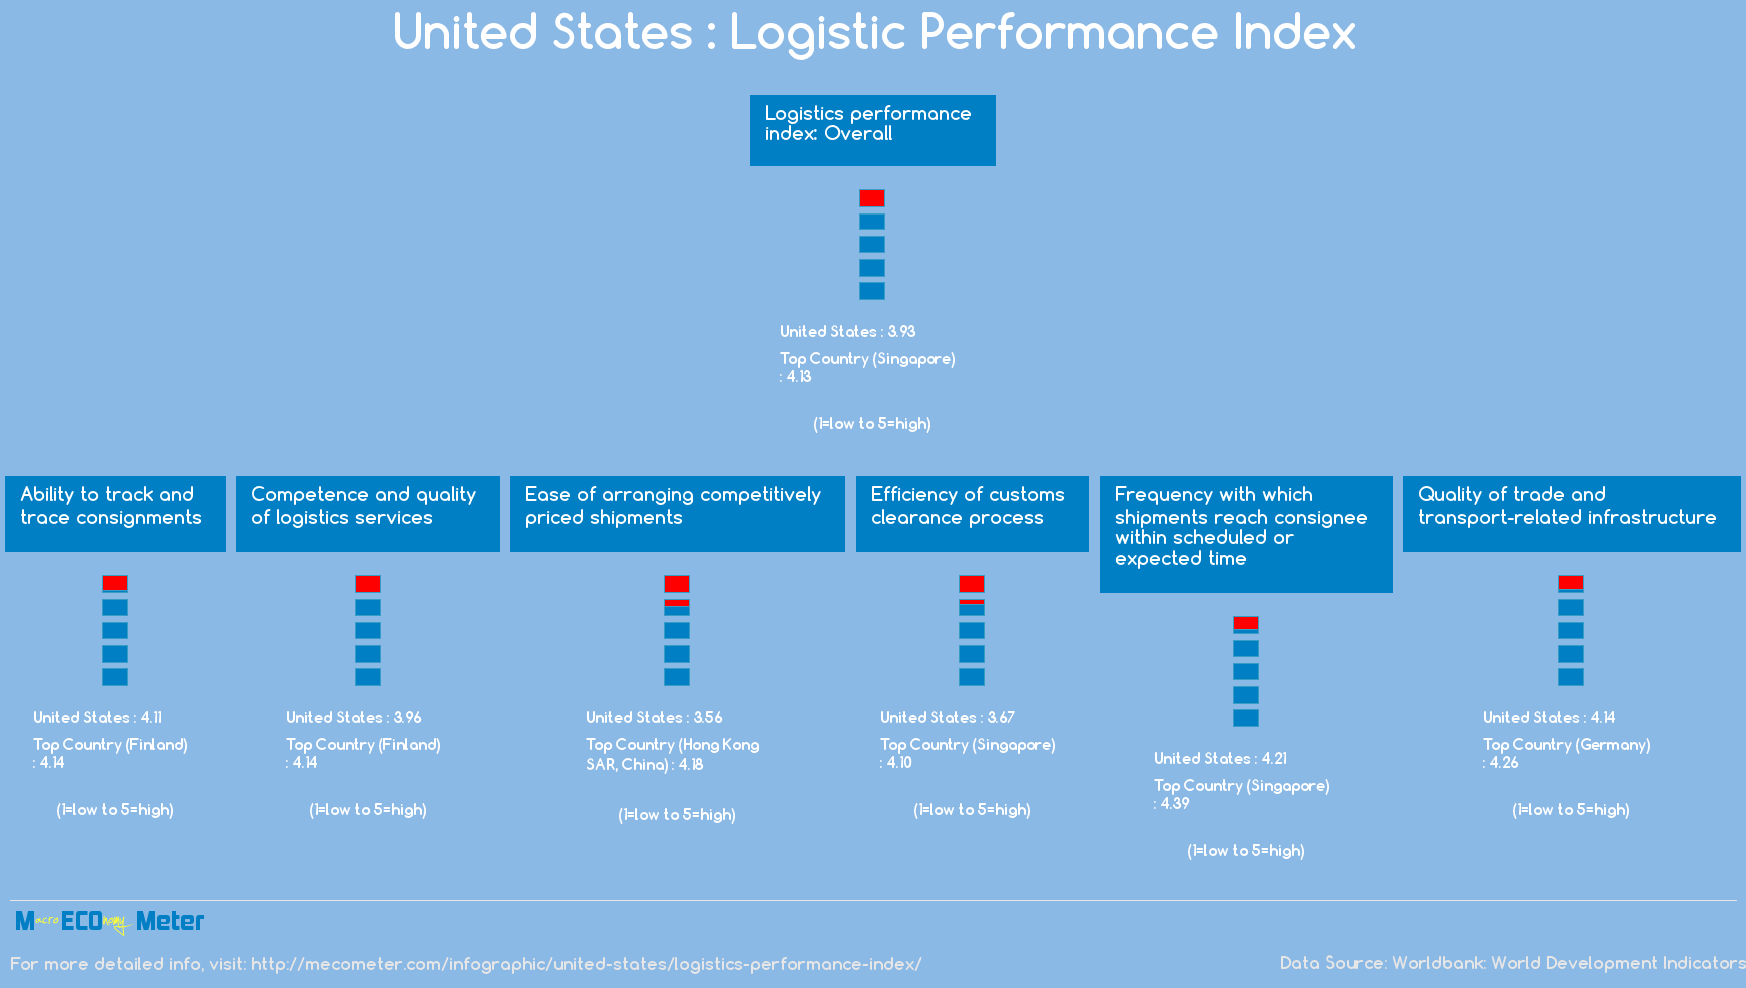 United States : Logistic Performance Index